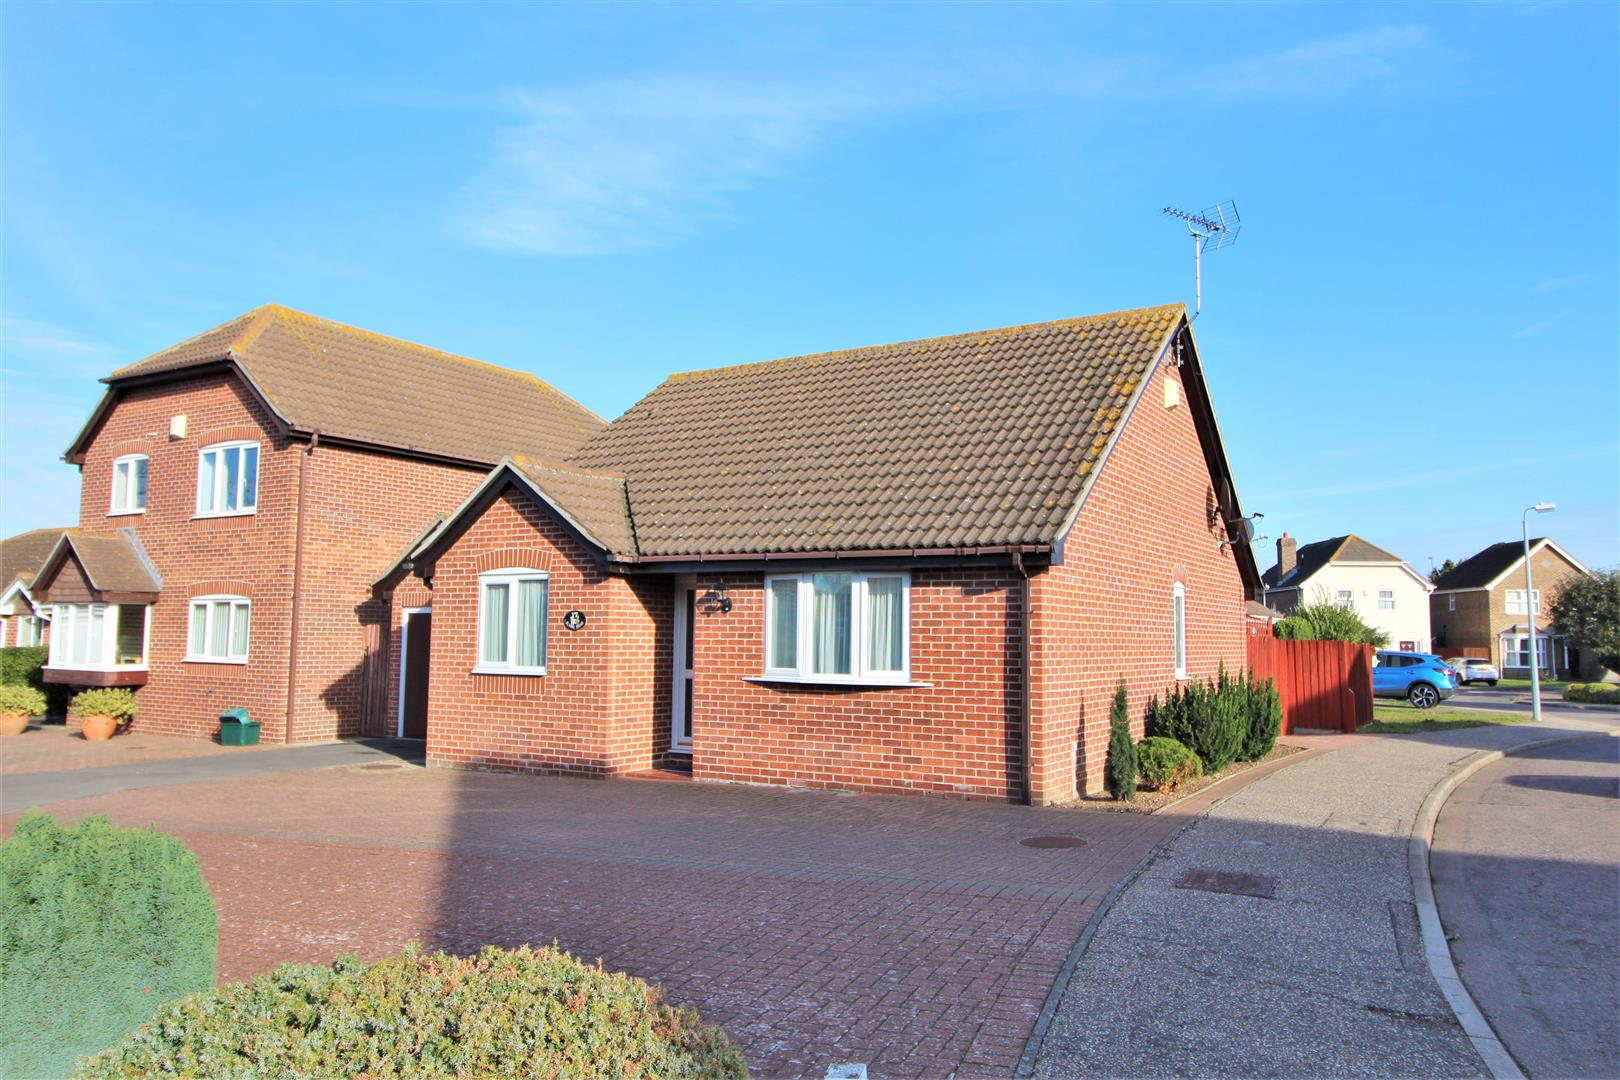 Blaine Drive, Kirby Cross, Essex, CO13 0UR